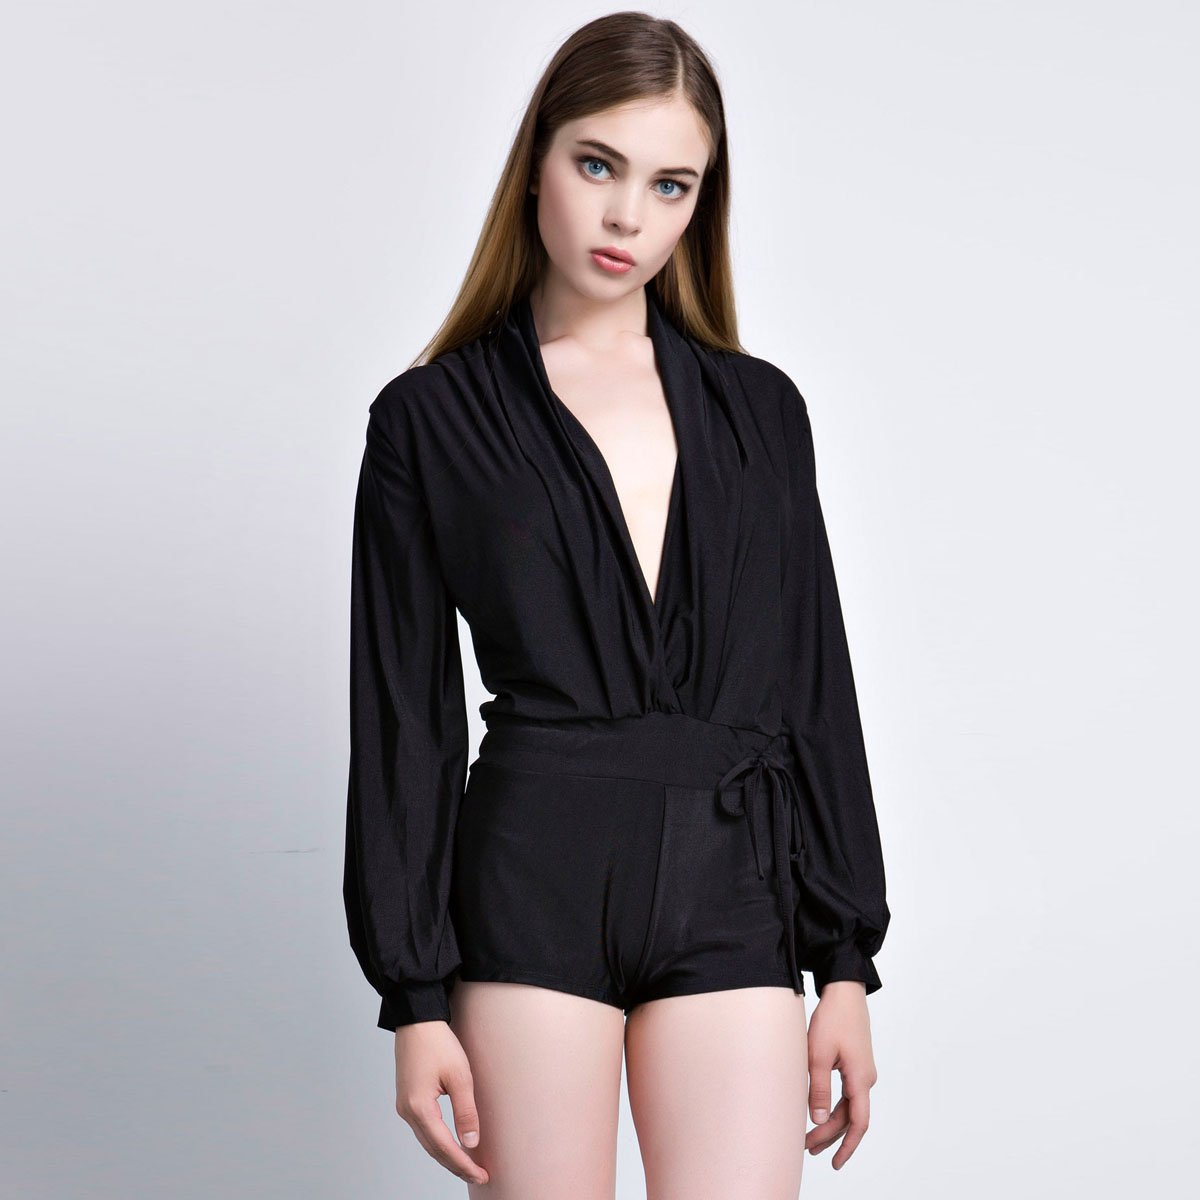 OASAP Long Sleeve Ruffle Sheen Black Mini Romper, black, XL, 40697